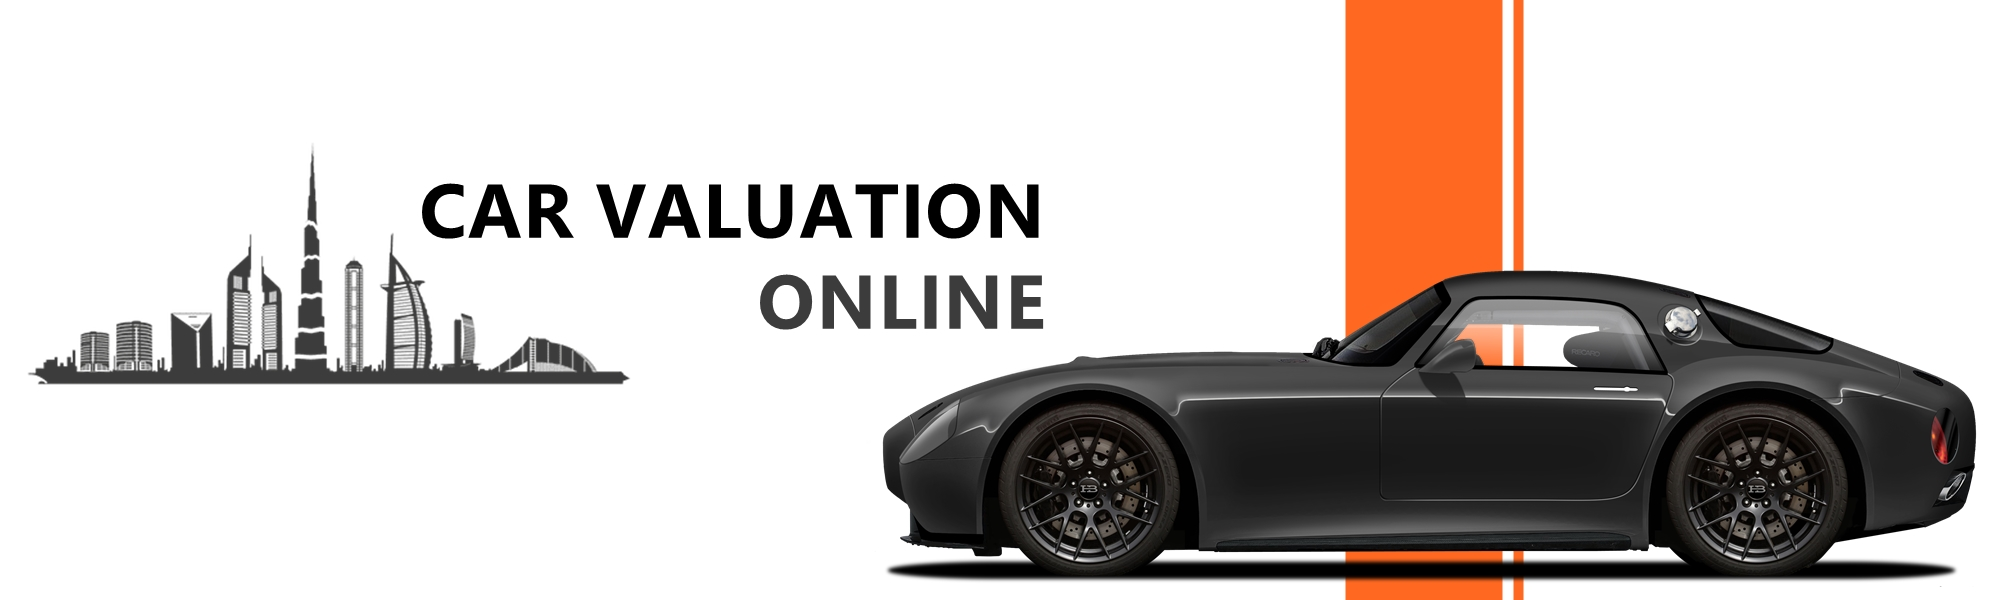 Car Valuation Online - Sell any car today in Dubai